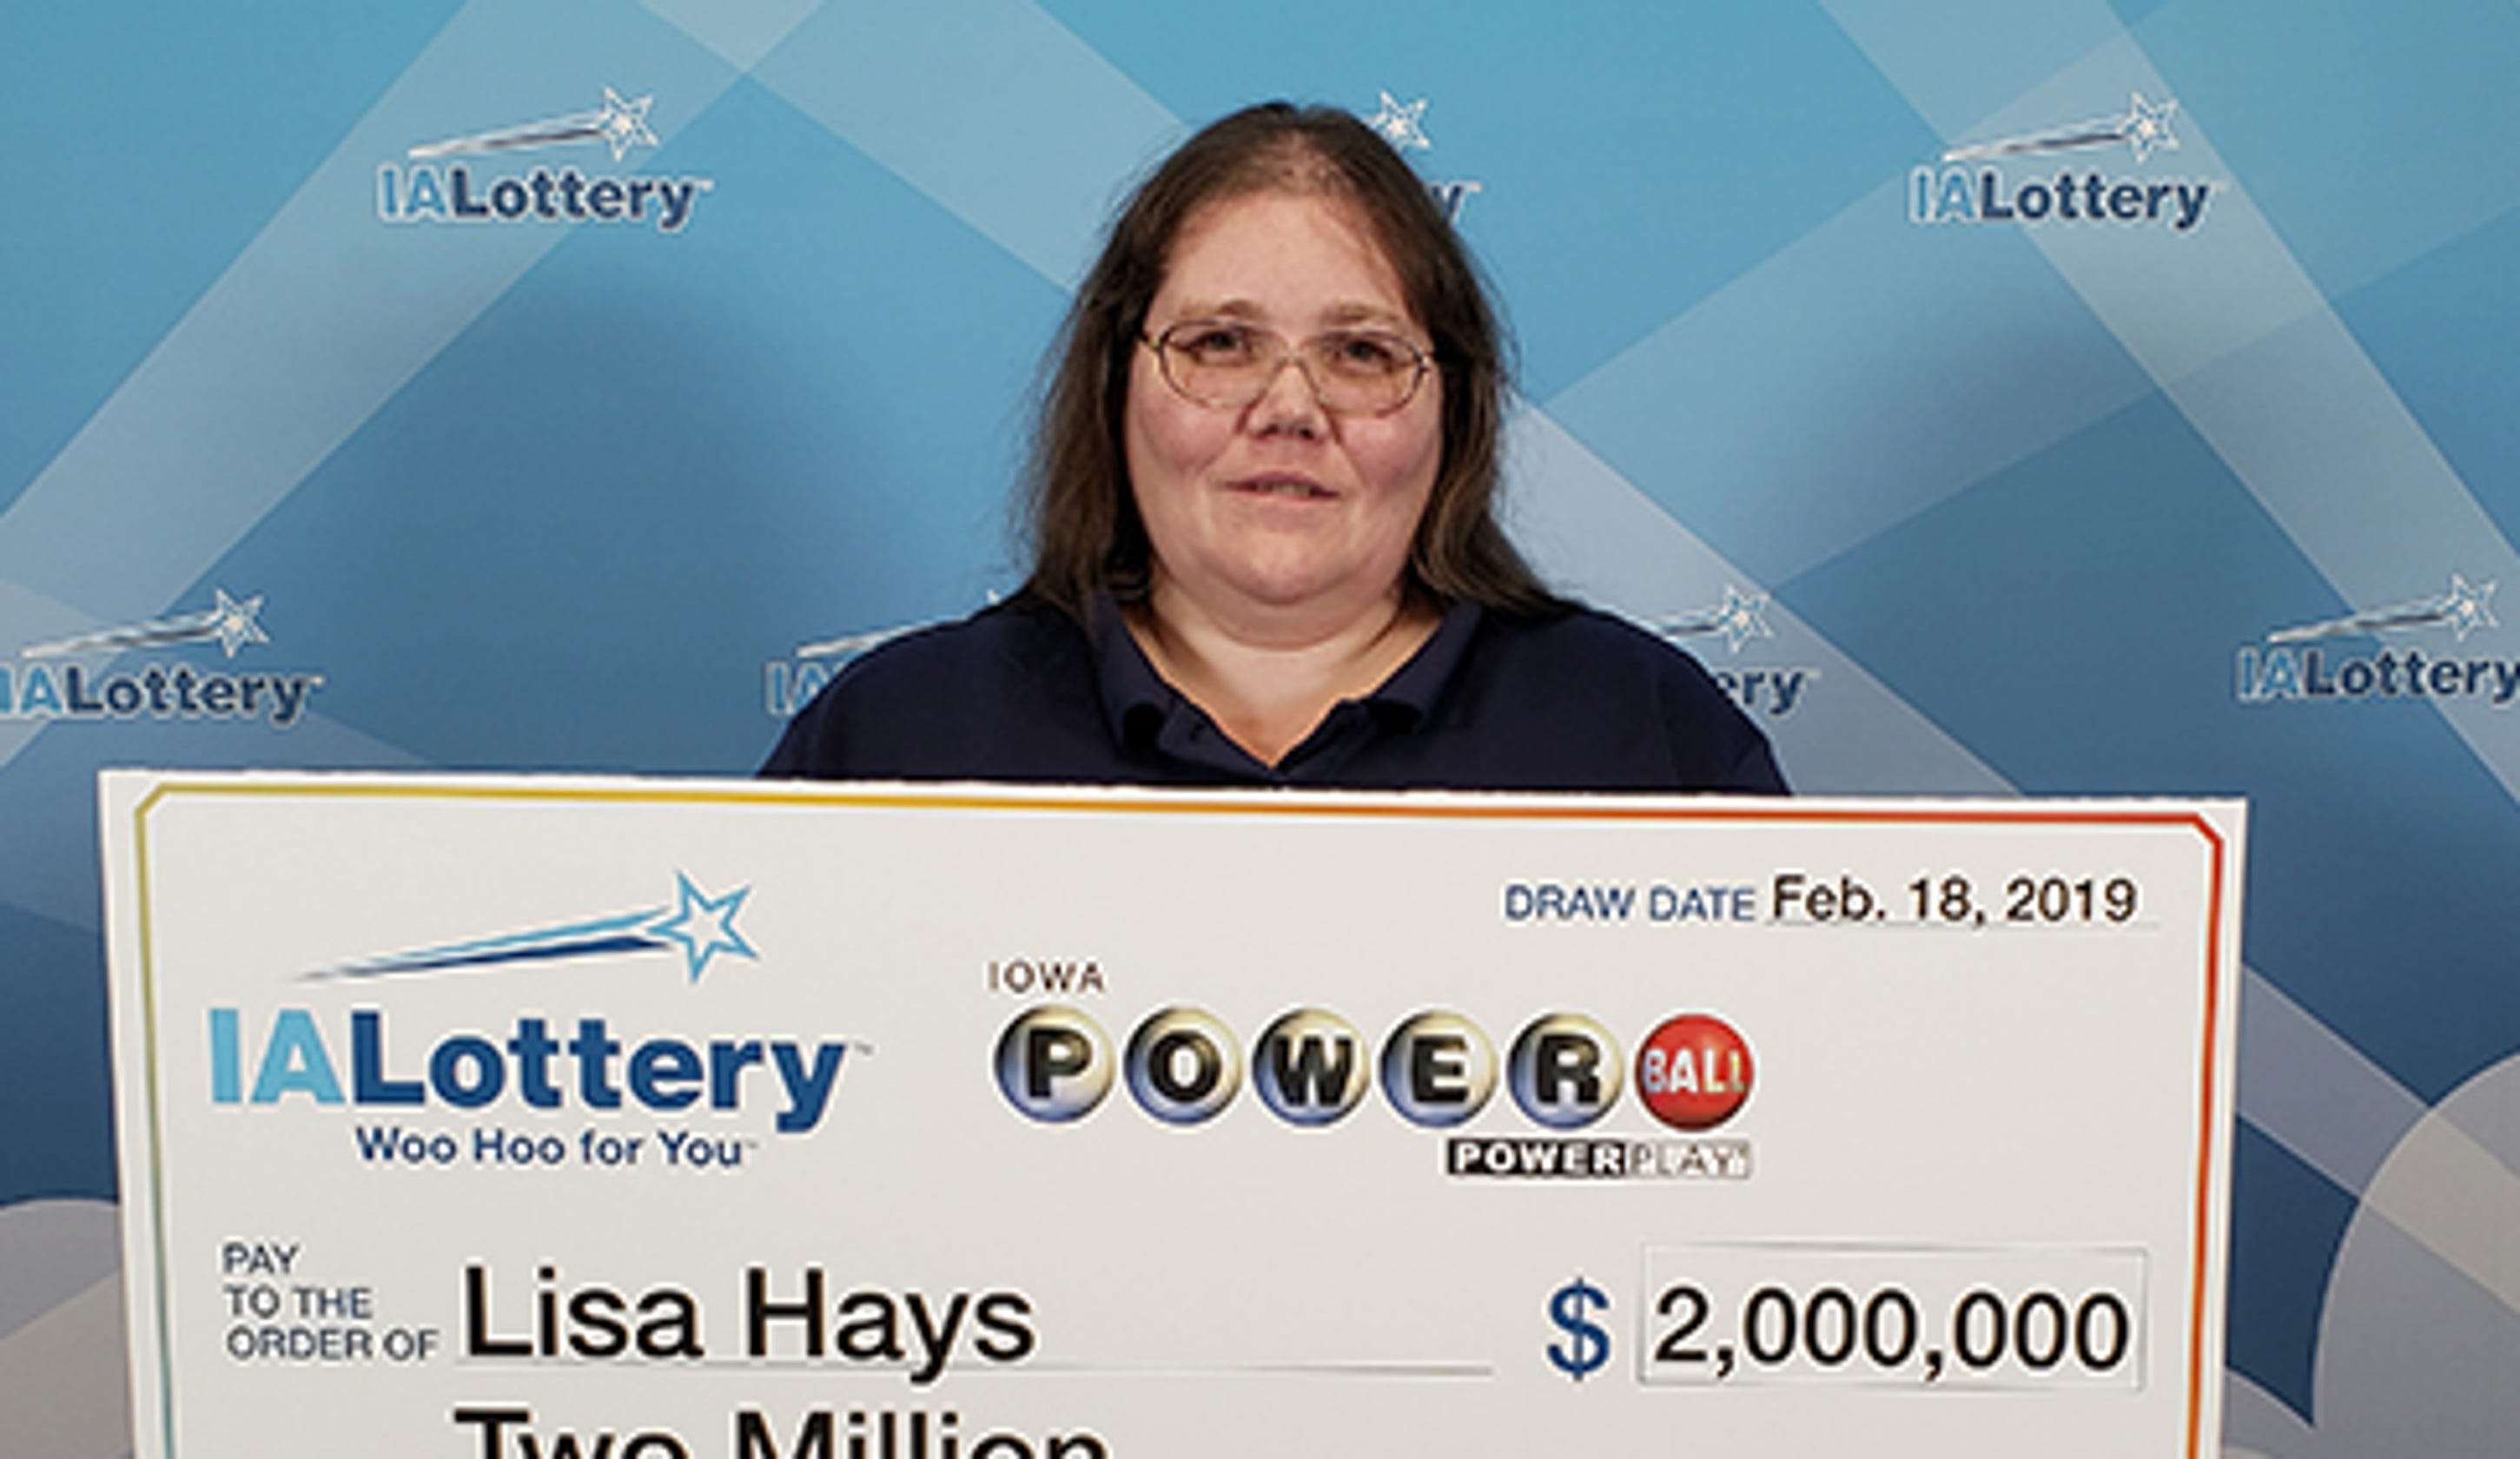 Illinois Woman Hopes To Buy Home Car With Iowa Lottery Win